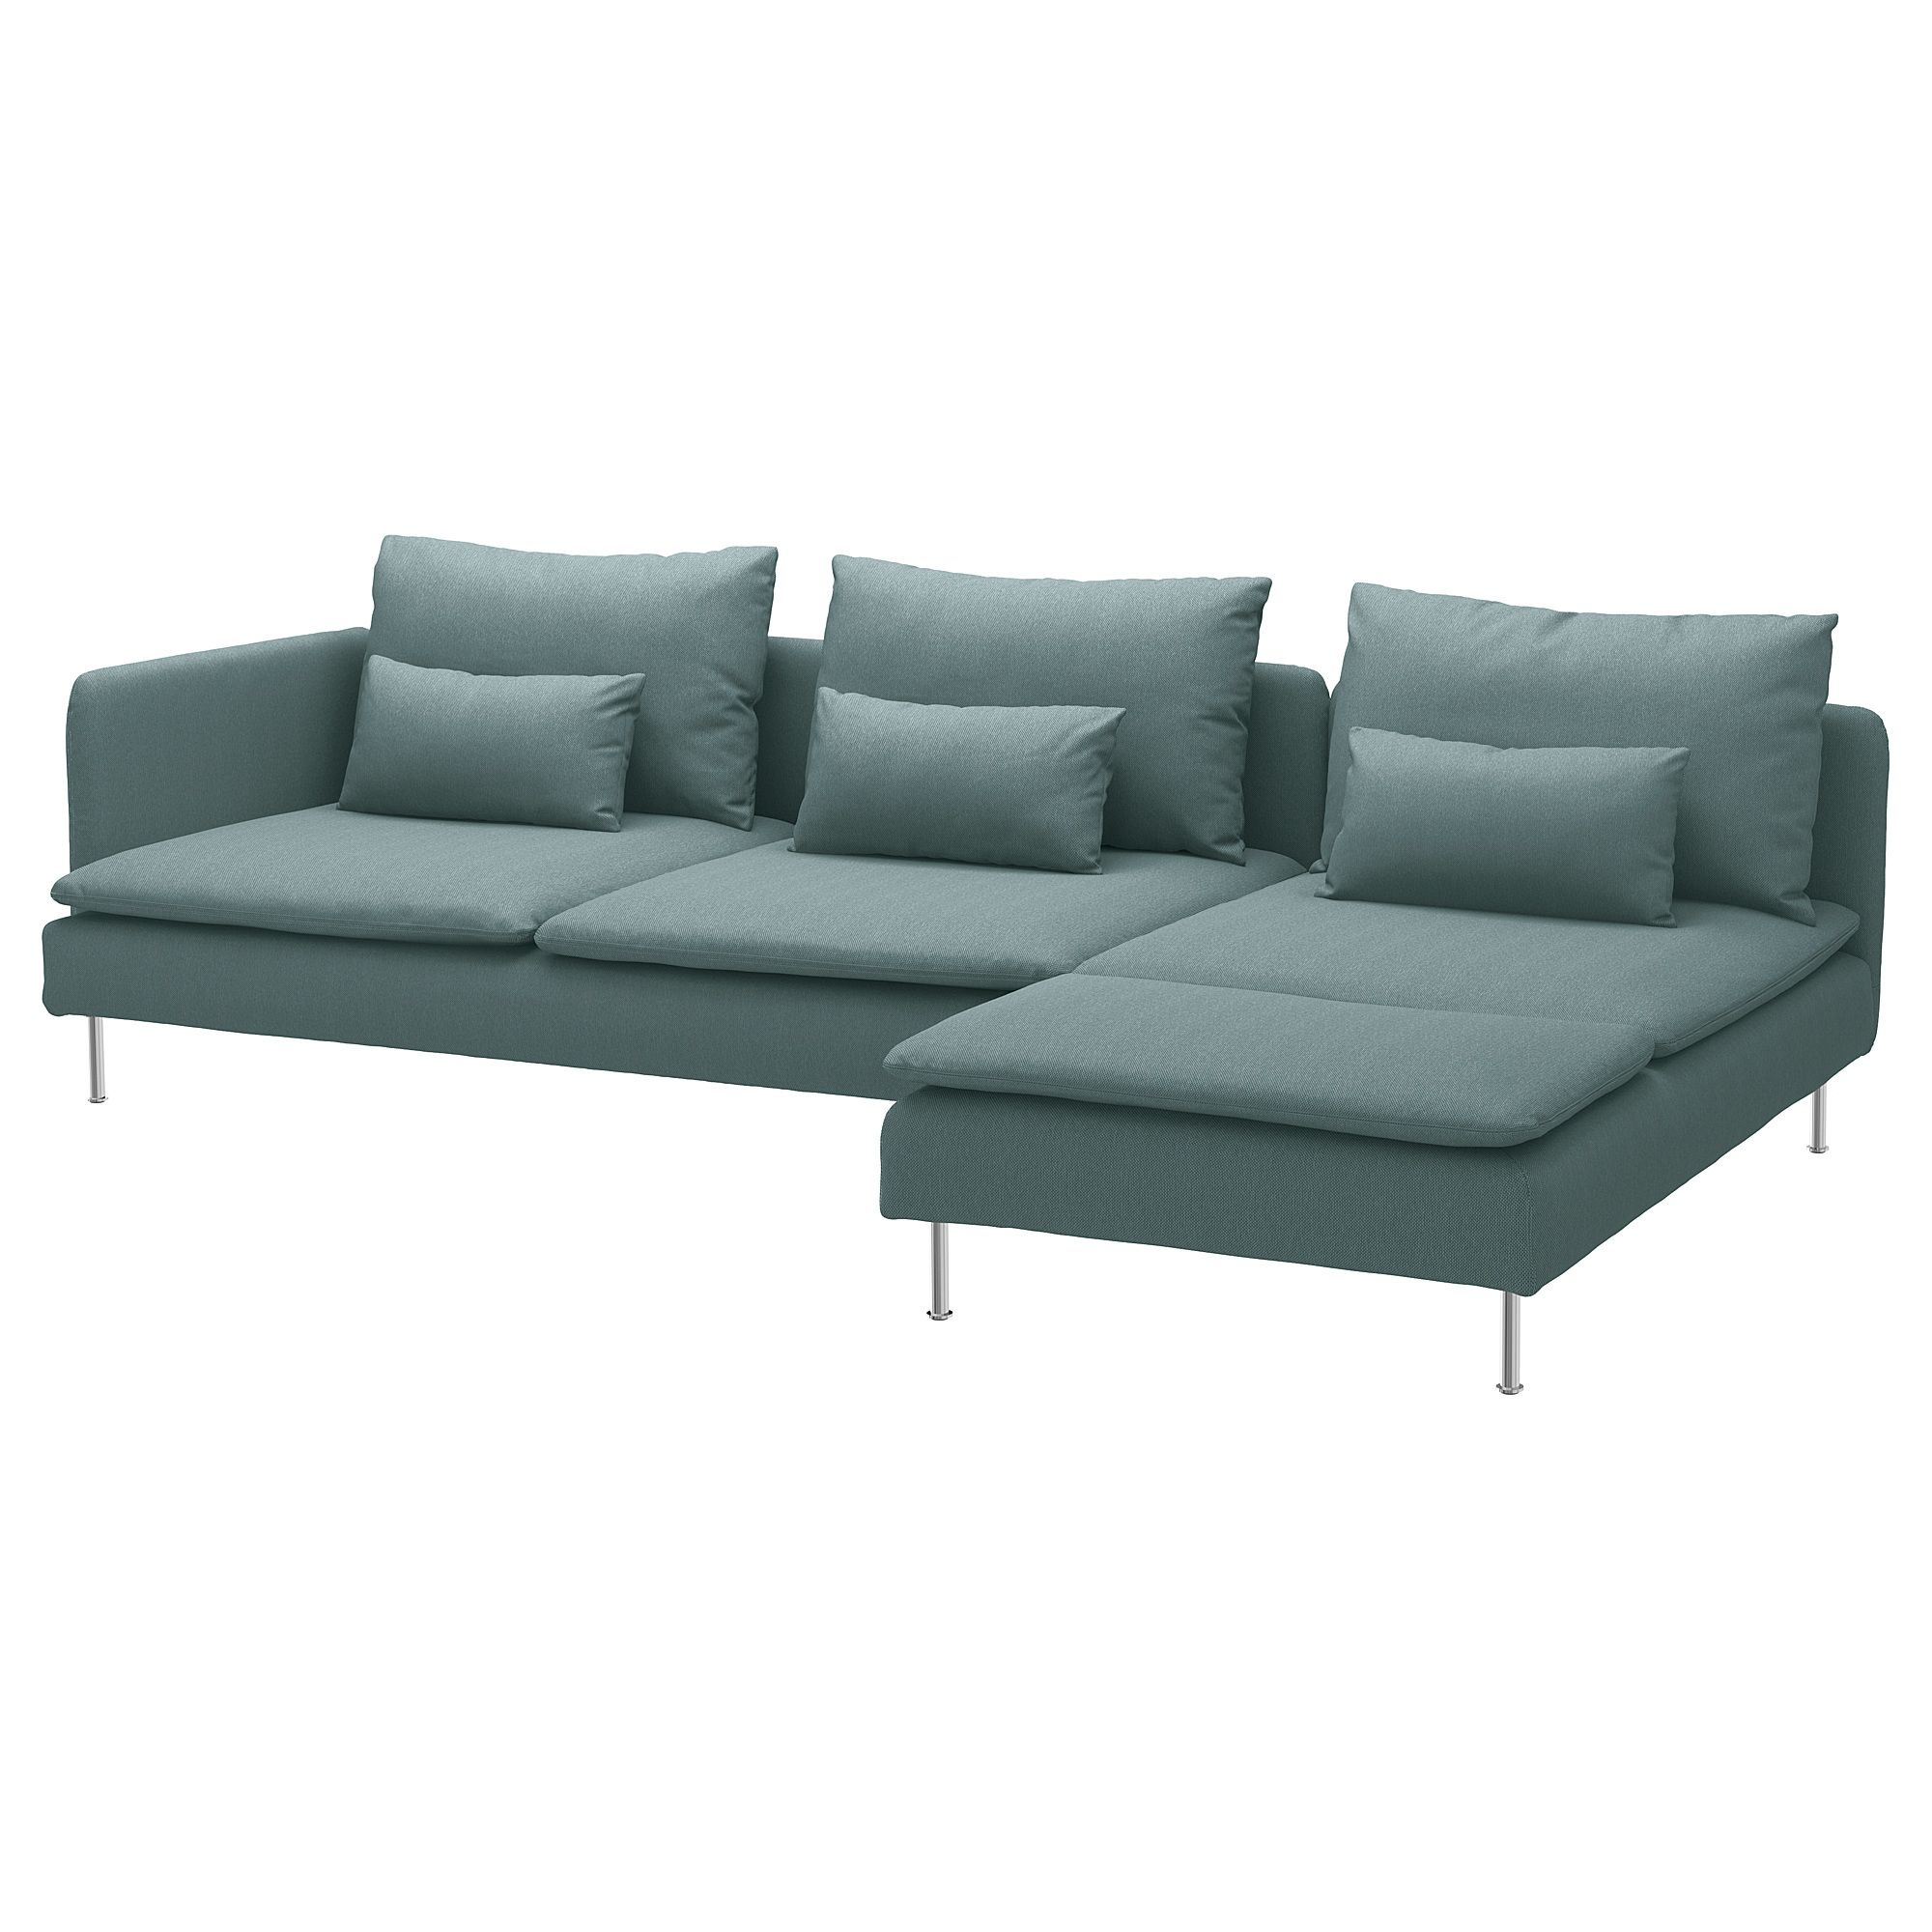 Soderhamn Sectional 4 Seat With Chaise And Open End Finnsta